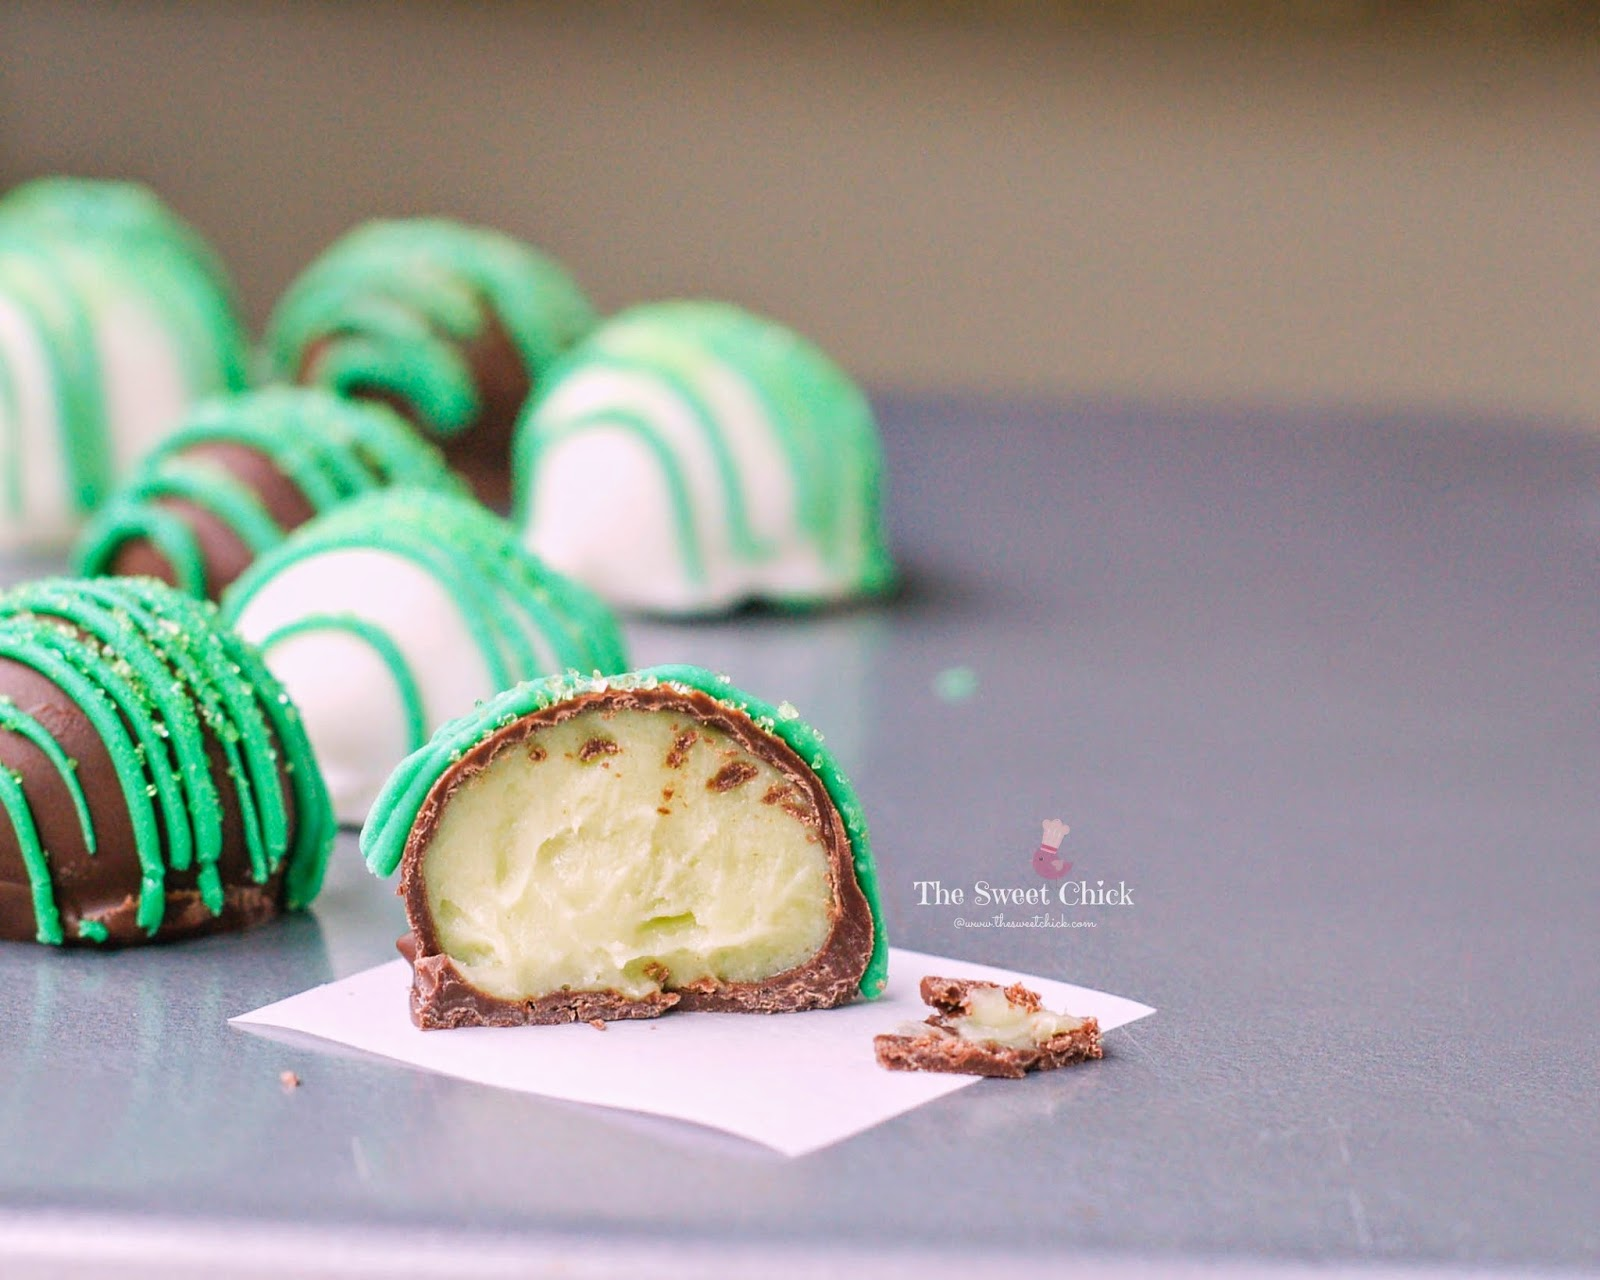 Tequila Lime Oreo Truffle by The Sweet Chick